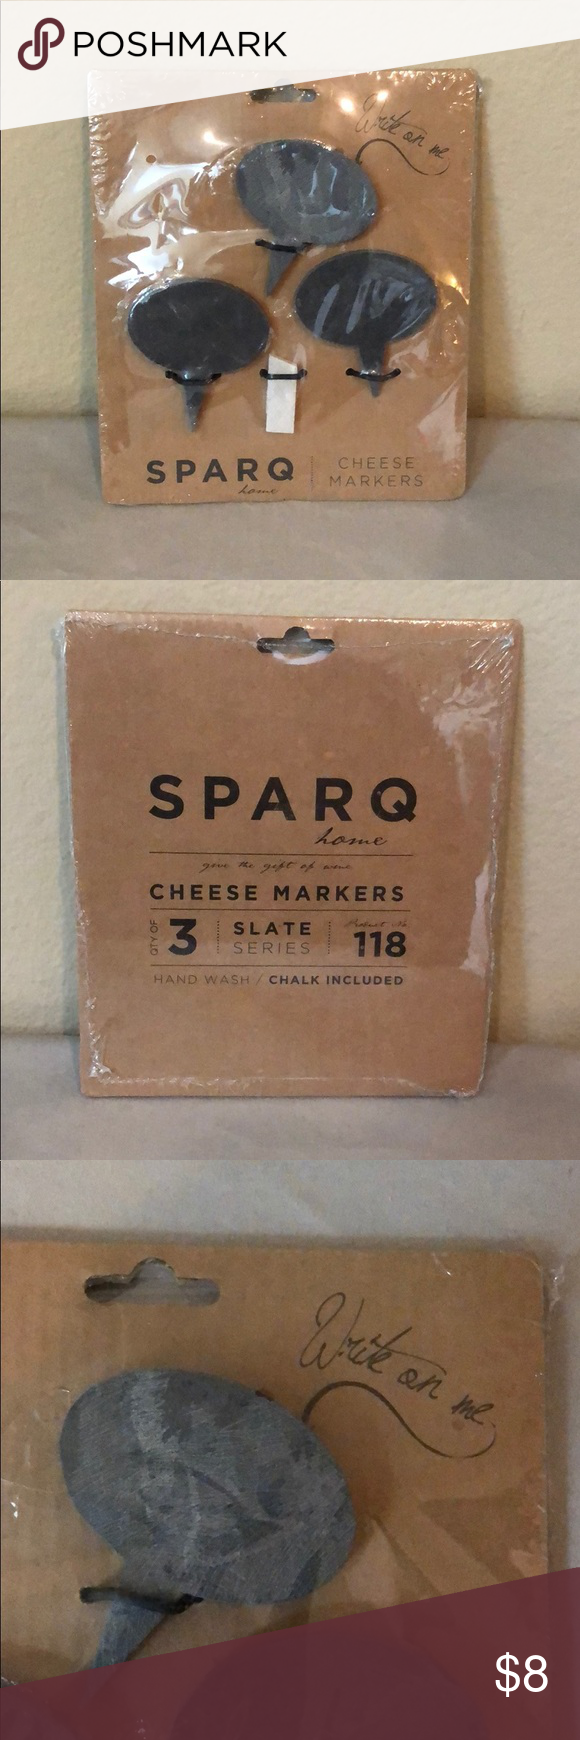 SPARQ home Cheese Markers I just added this listing on Poshmark: SPARQ home Cheese Markers.